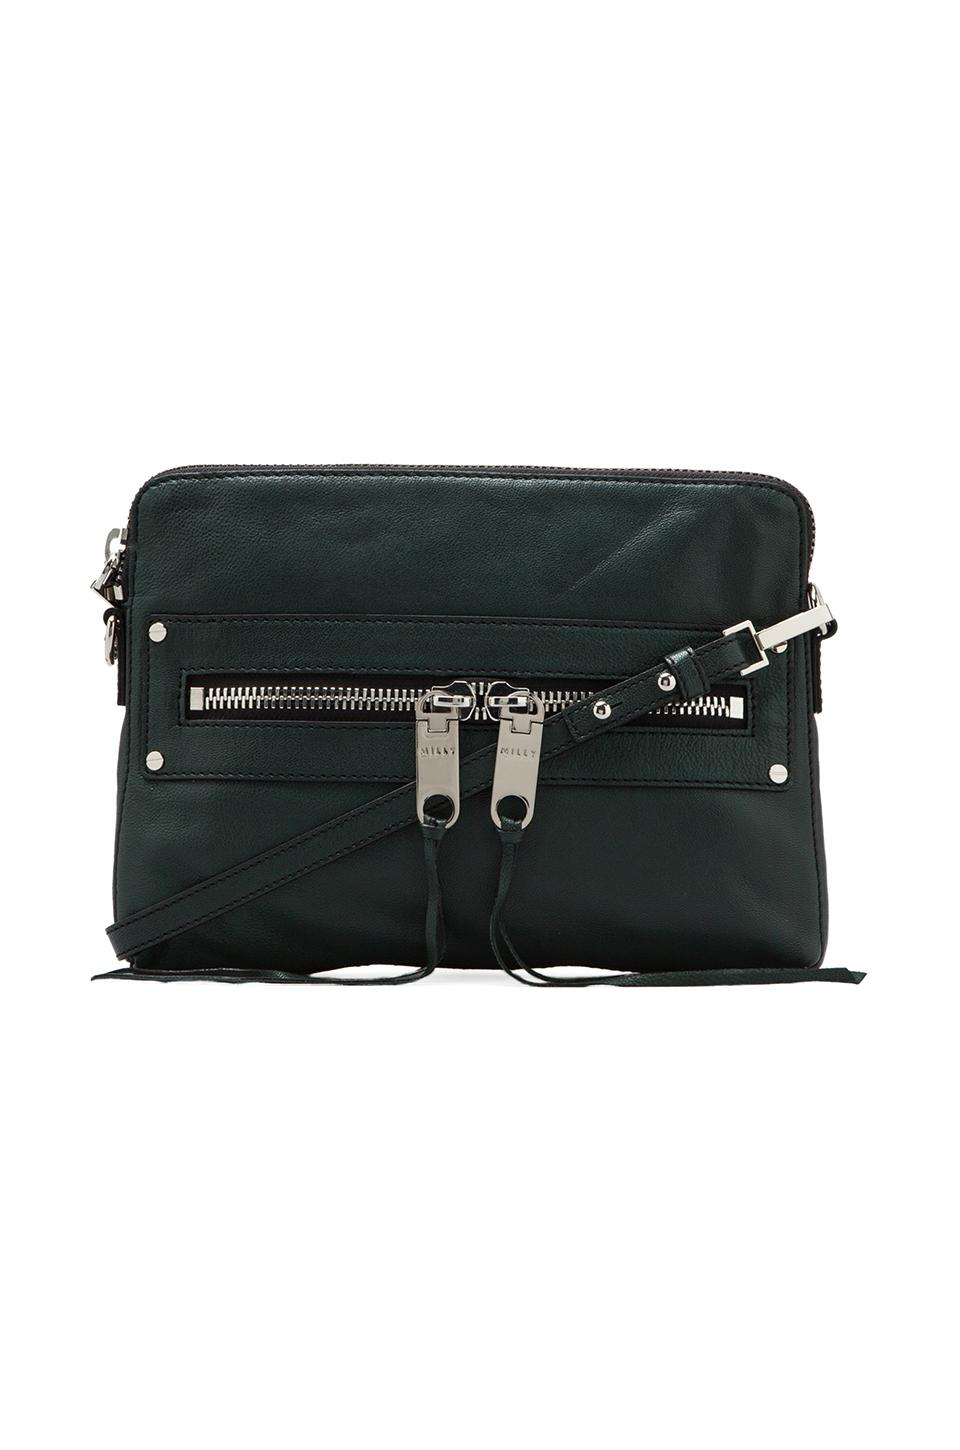 MILLY Riley Collection Crossbody Bag in Emerald